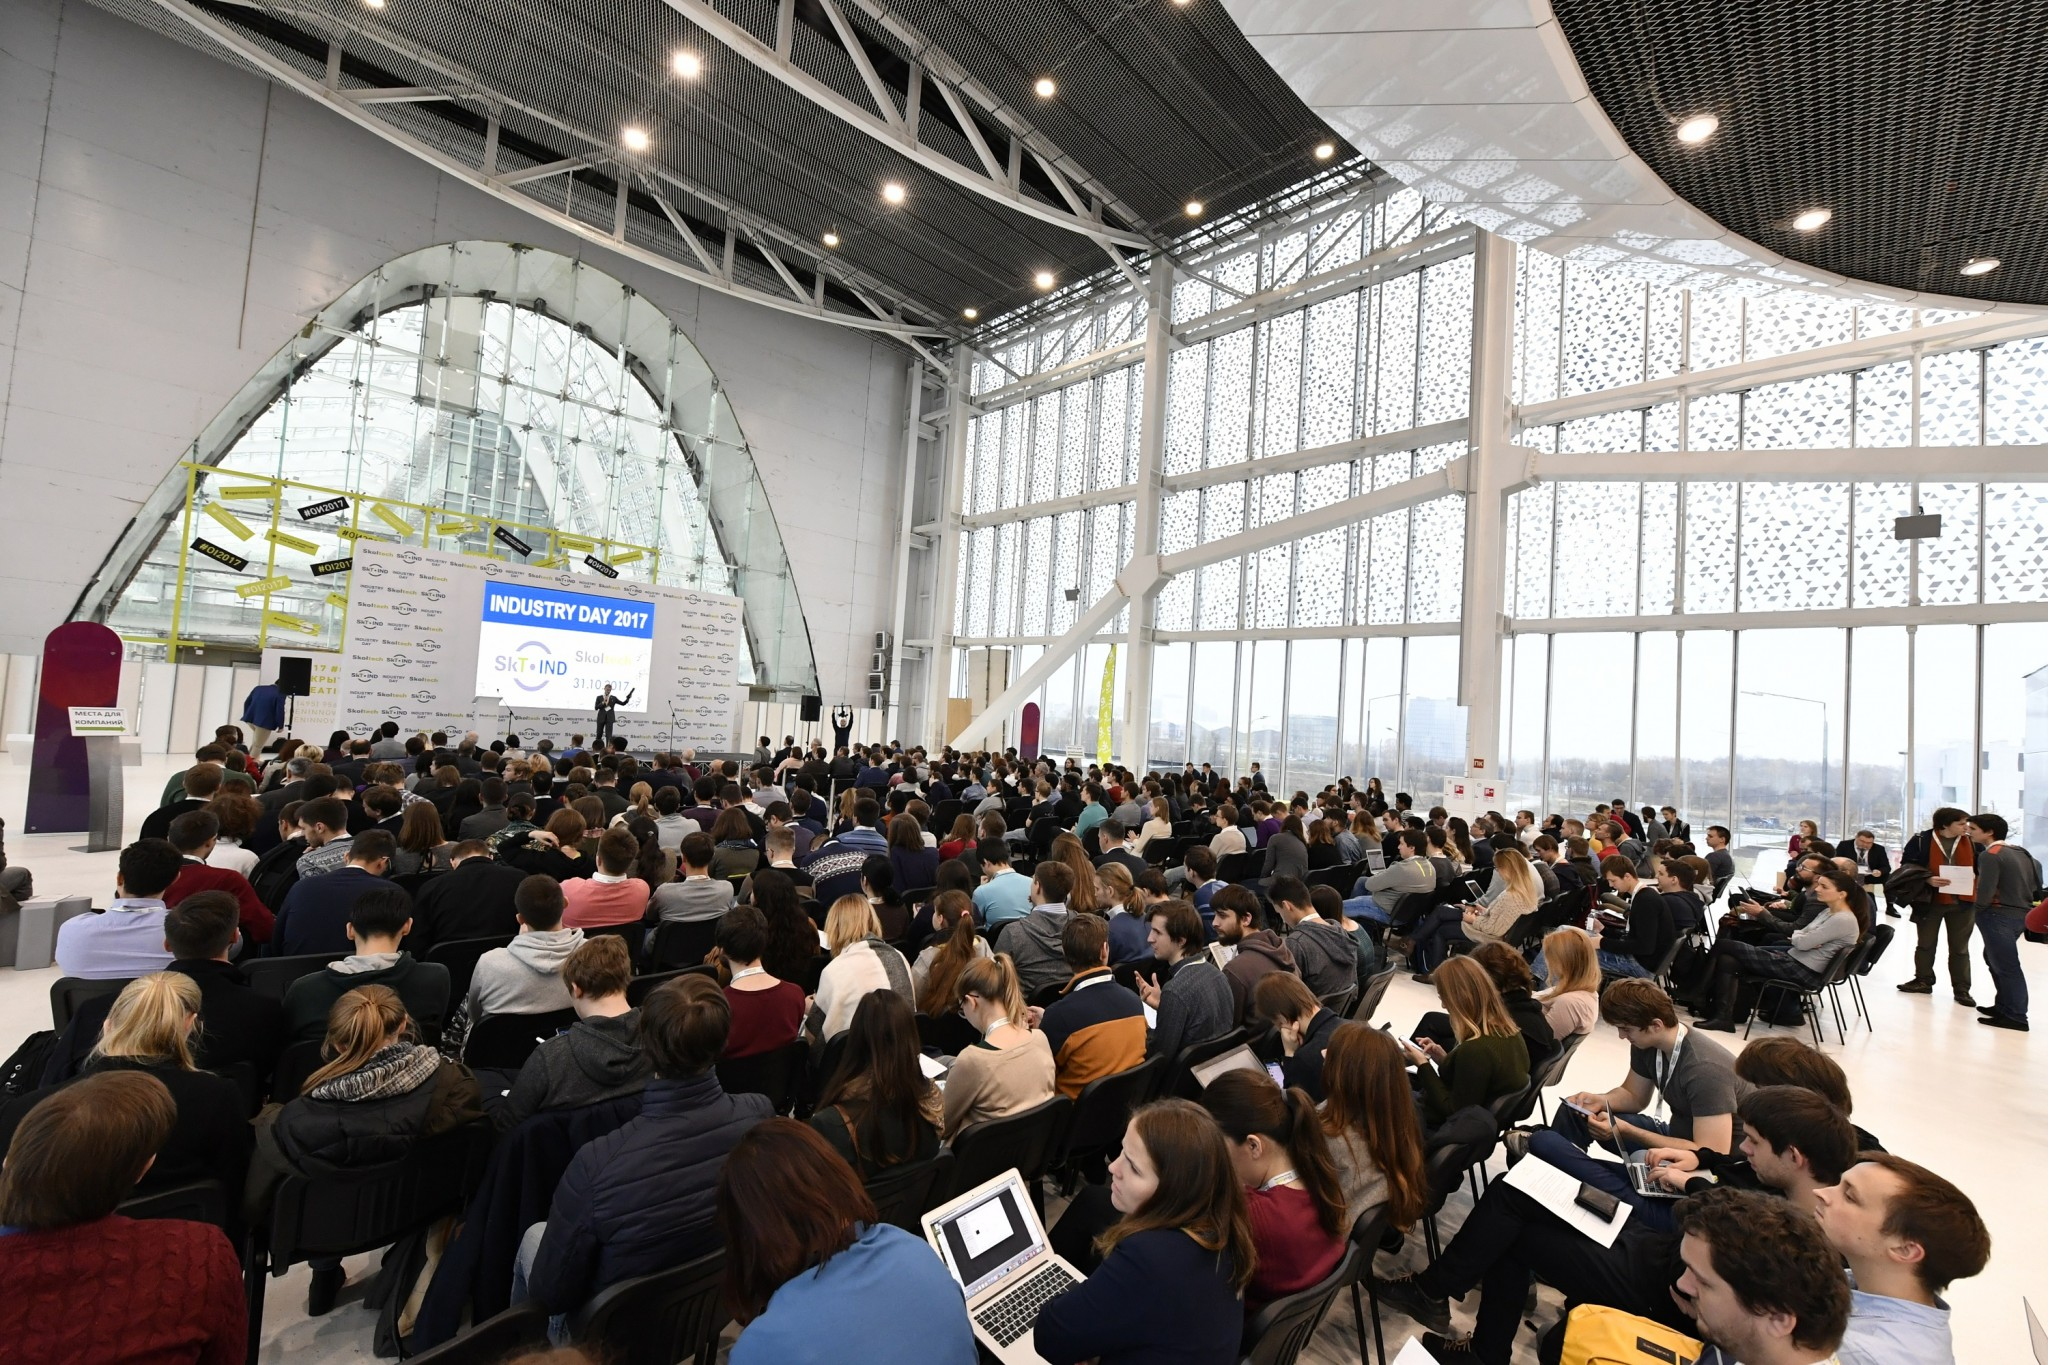 Hundreds congregate in the Skolkovo Technopark to celebrate Skoltech's strong ties with members of industry. Photo: Skoltech.